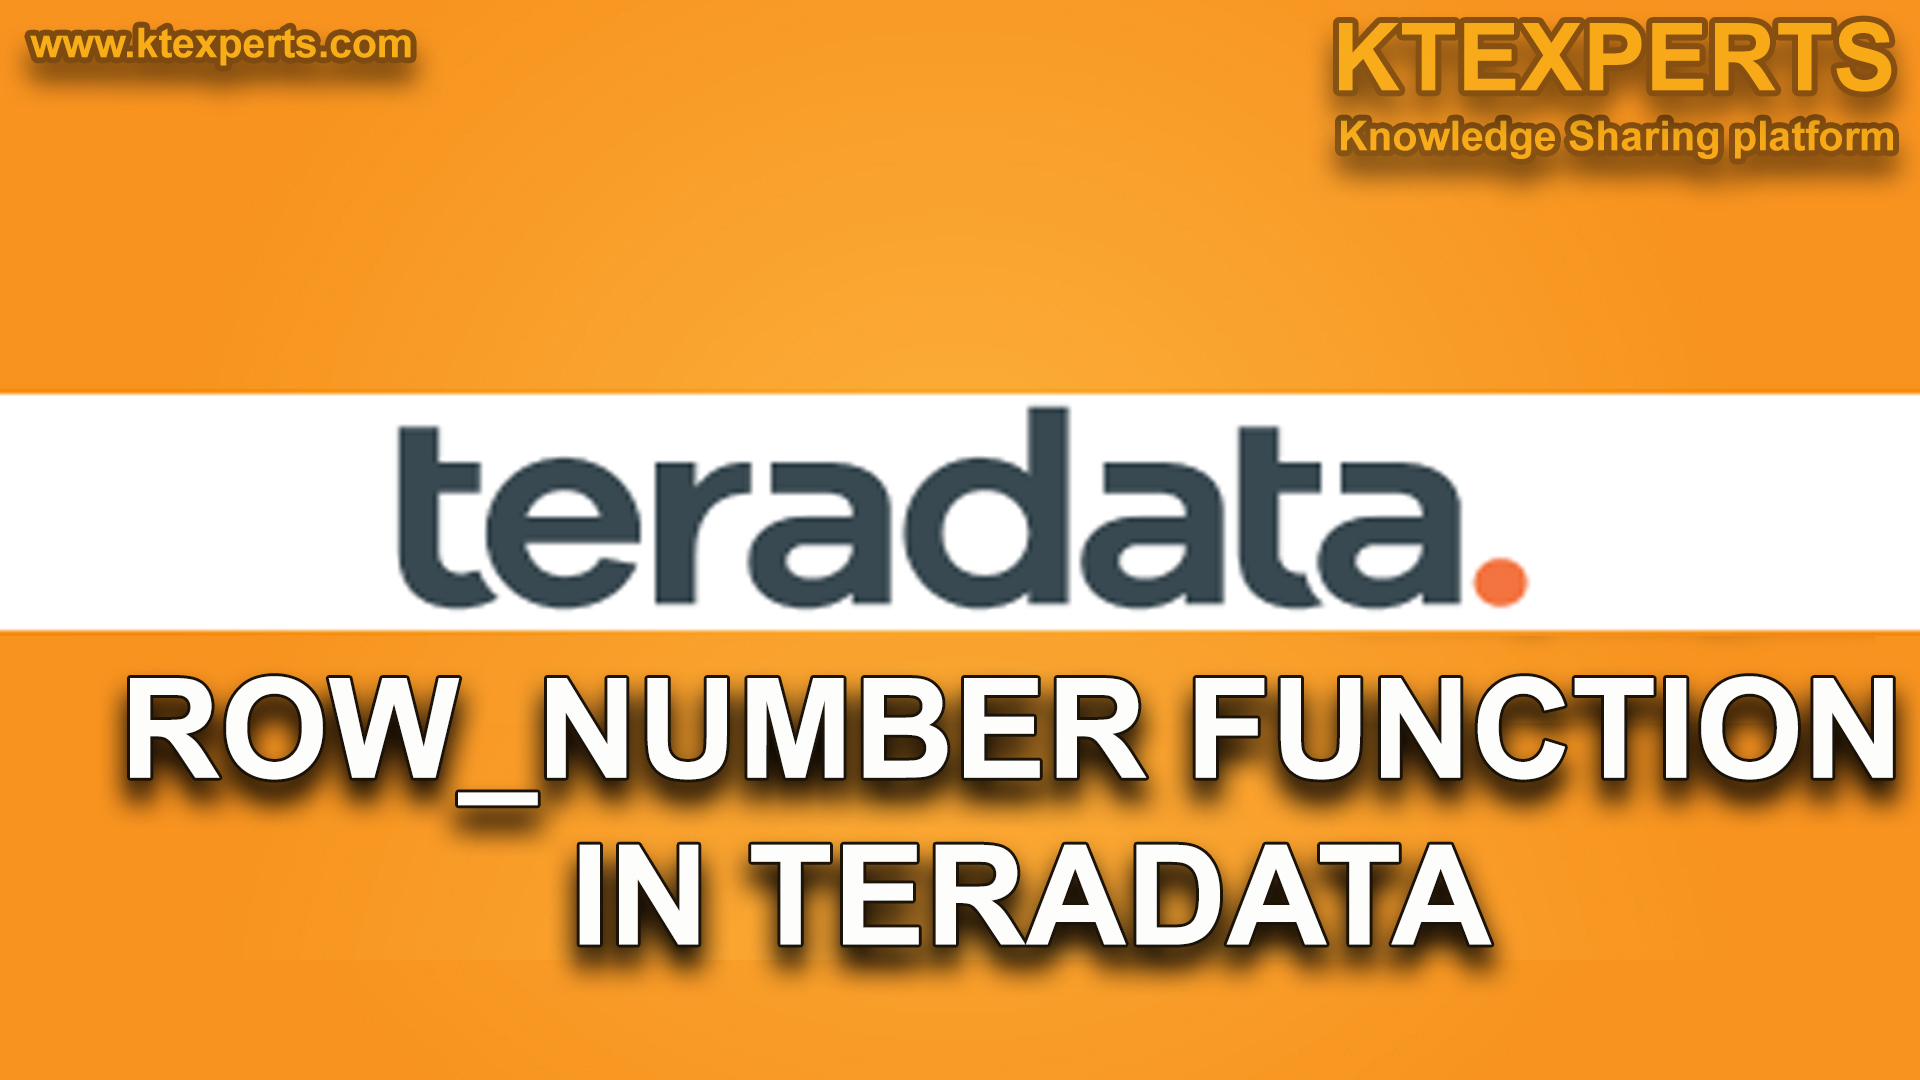 ROW_NUMBER FUNCTION IN TERADATA